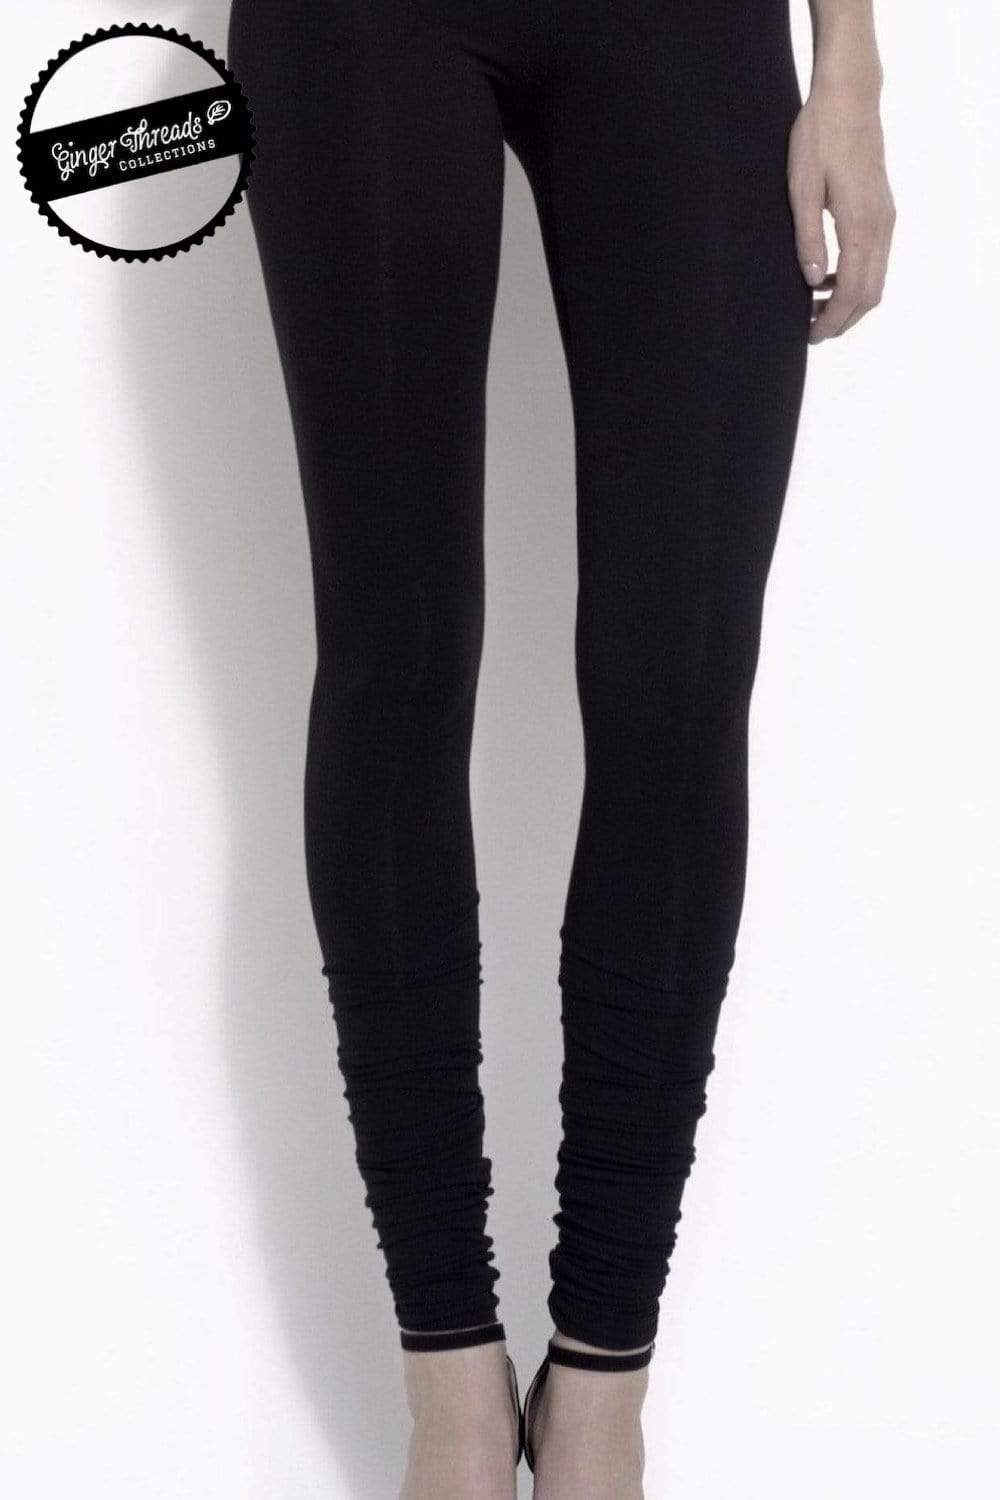 Ginger Threads Collections pants Bamboo Stacked Black Jersey Leggings